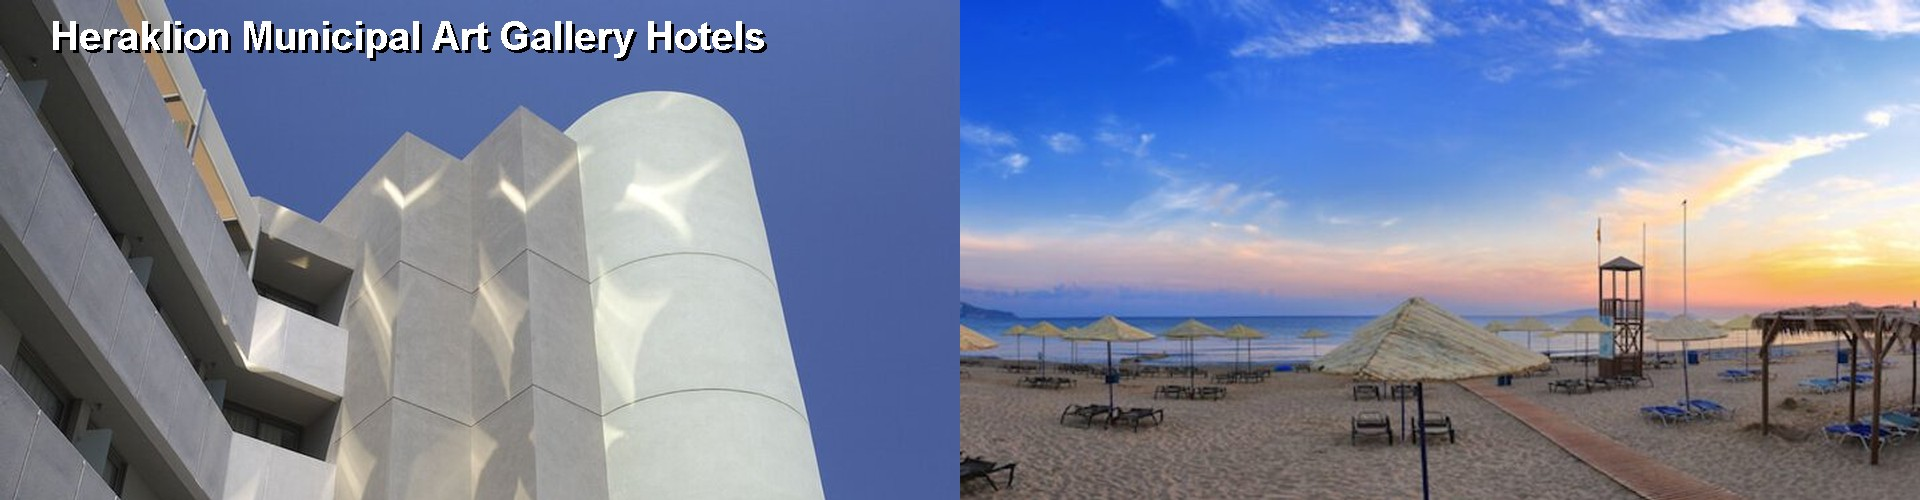 5 Best Hotels near Heraklion Municipal Art Gallery